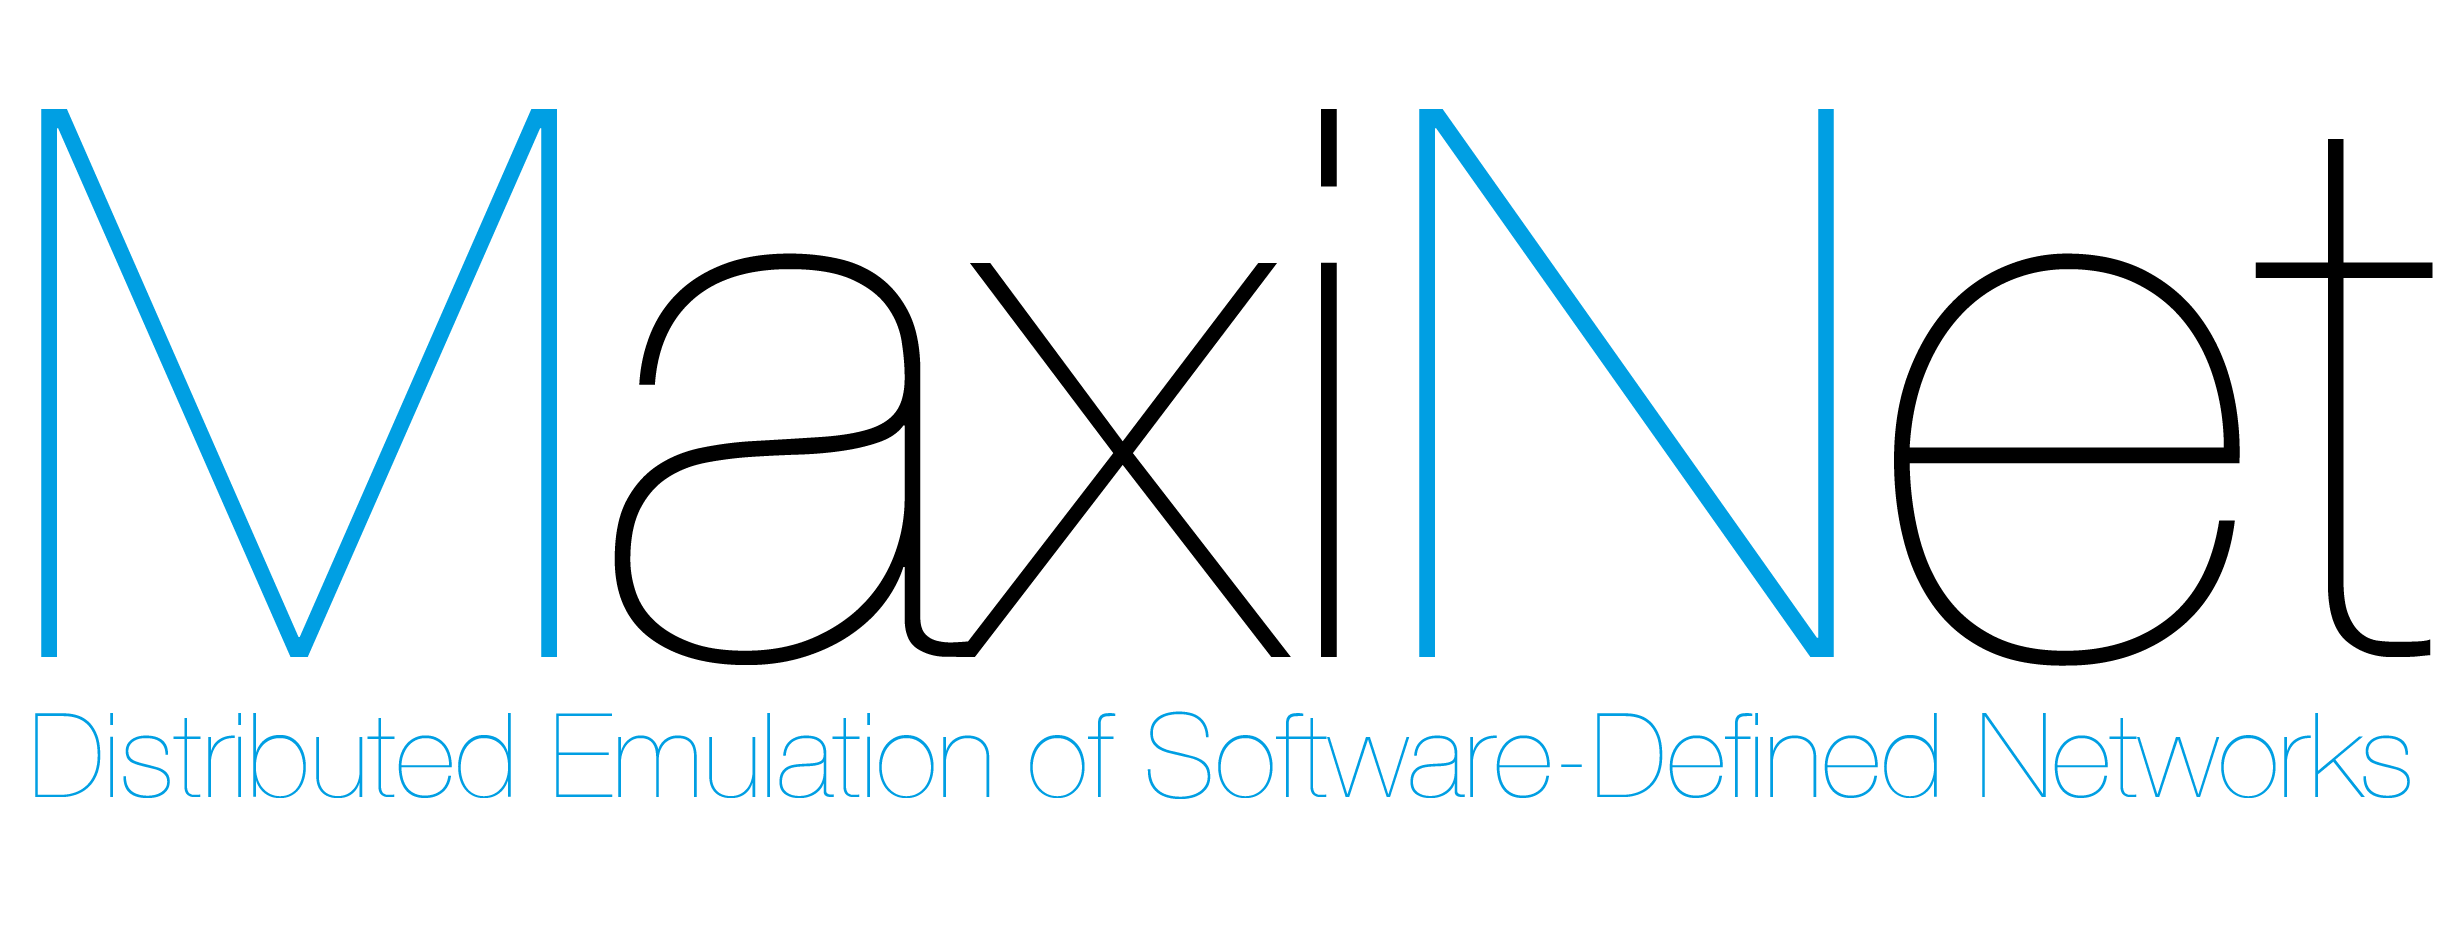 MaxiNet Distributed Emulation of Software-Defined Networks